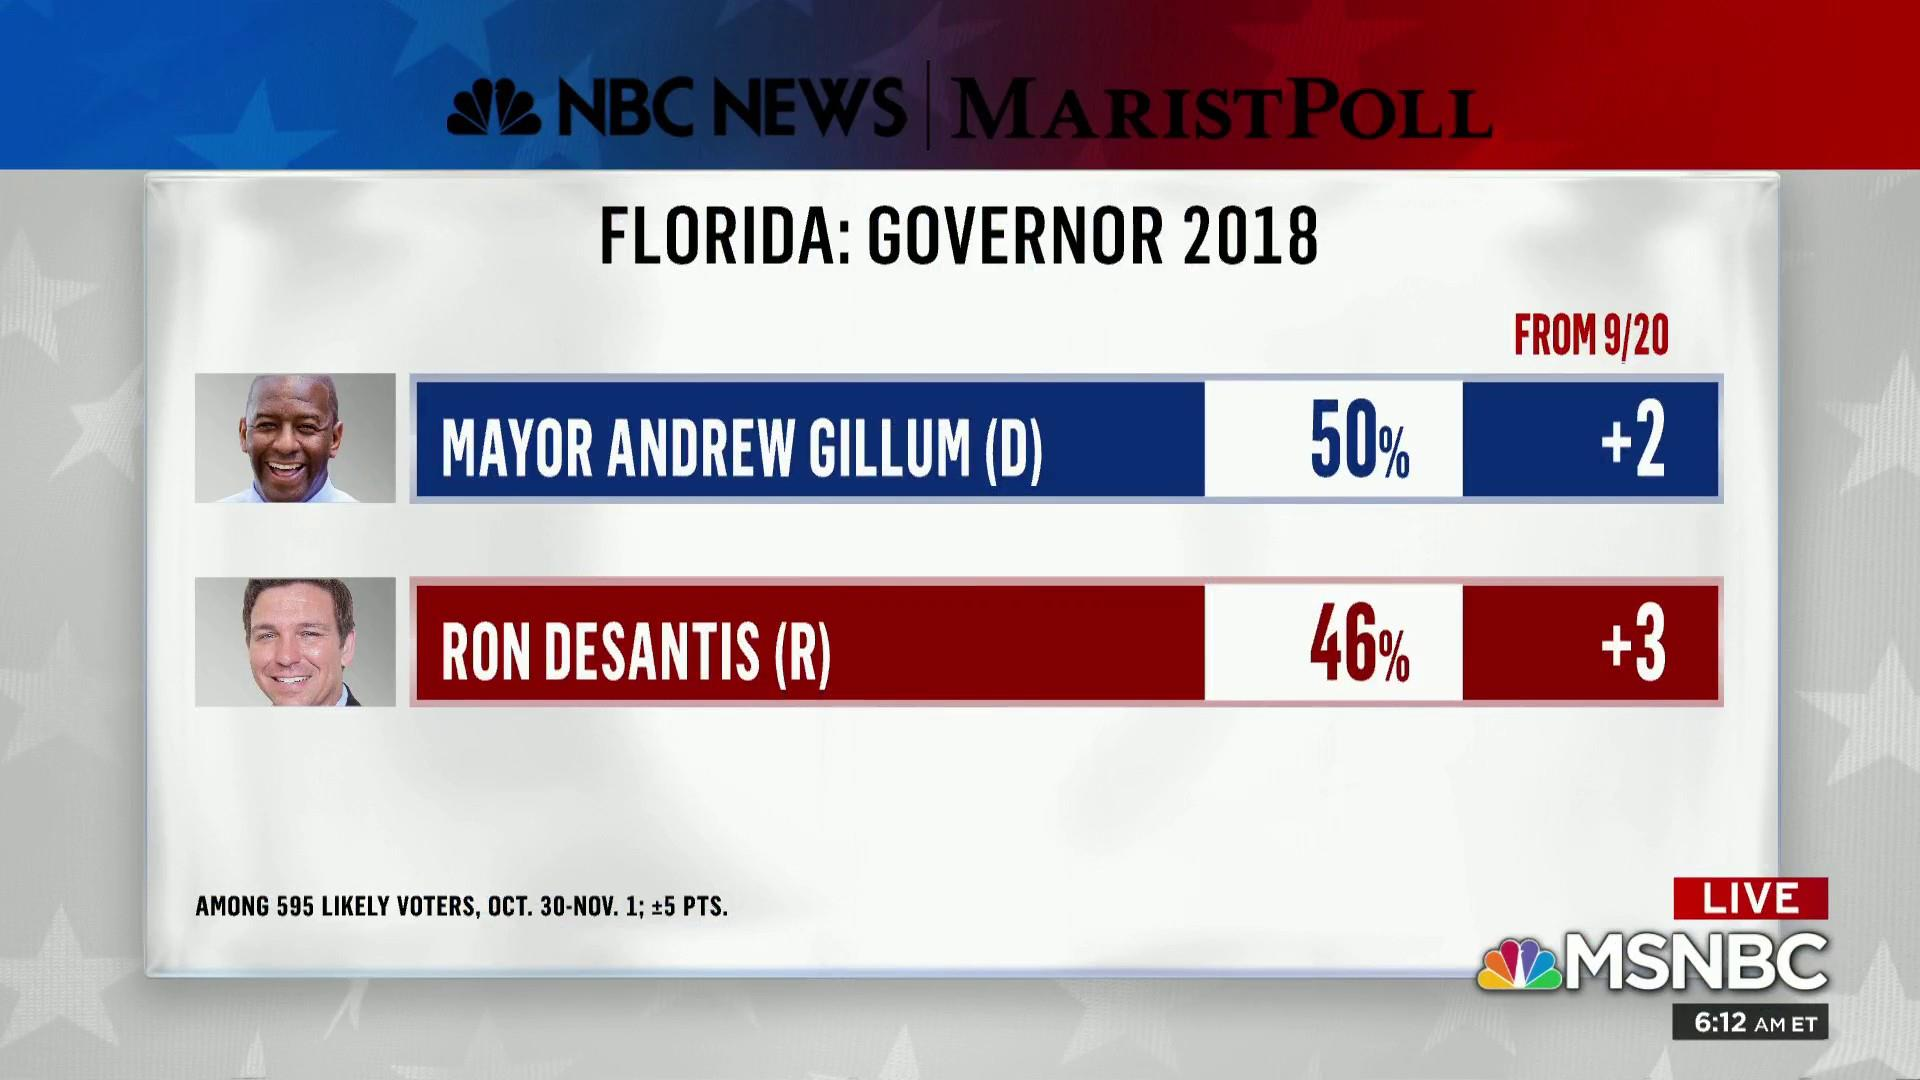 Andrew Gillum up among likely voters in new poll